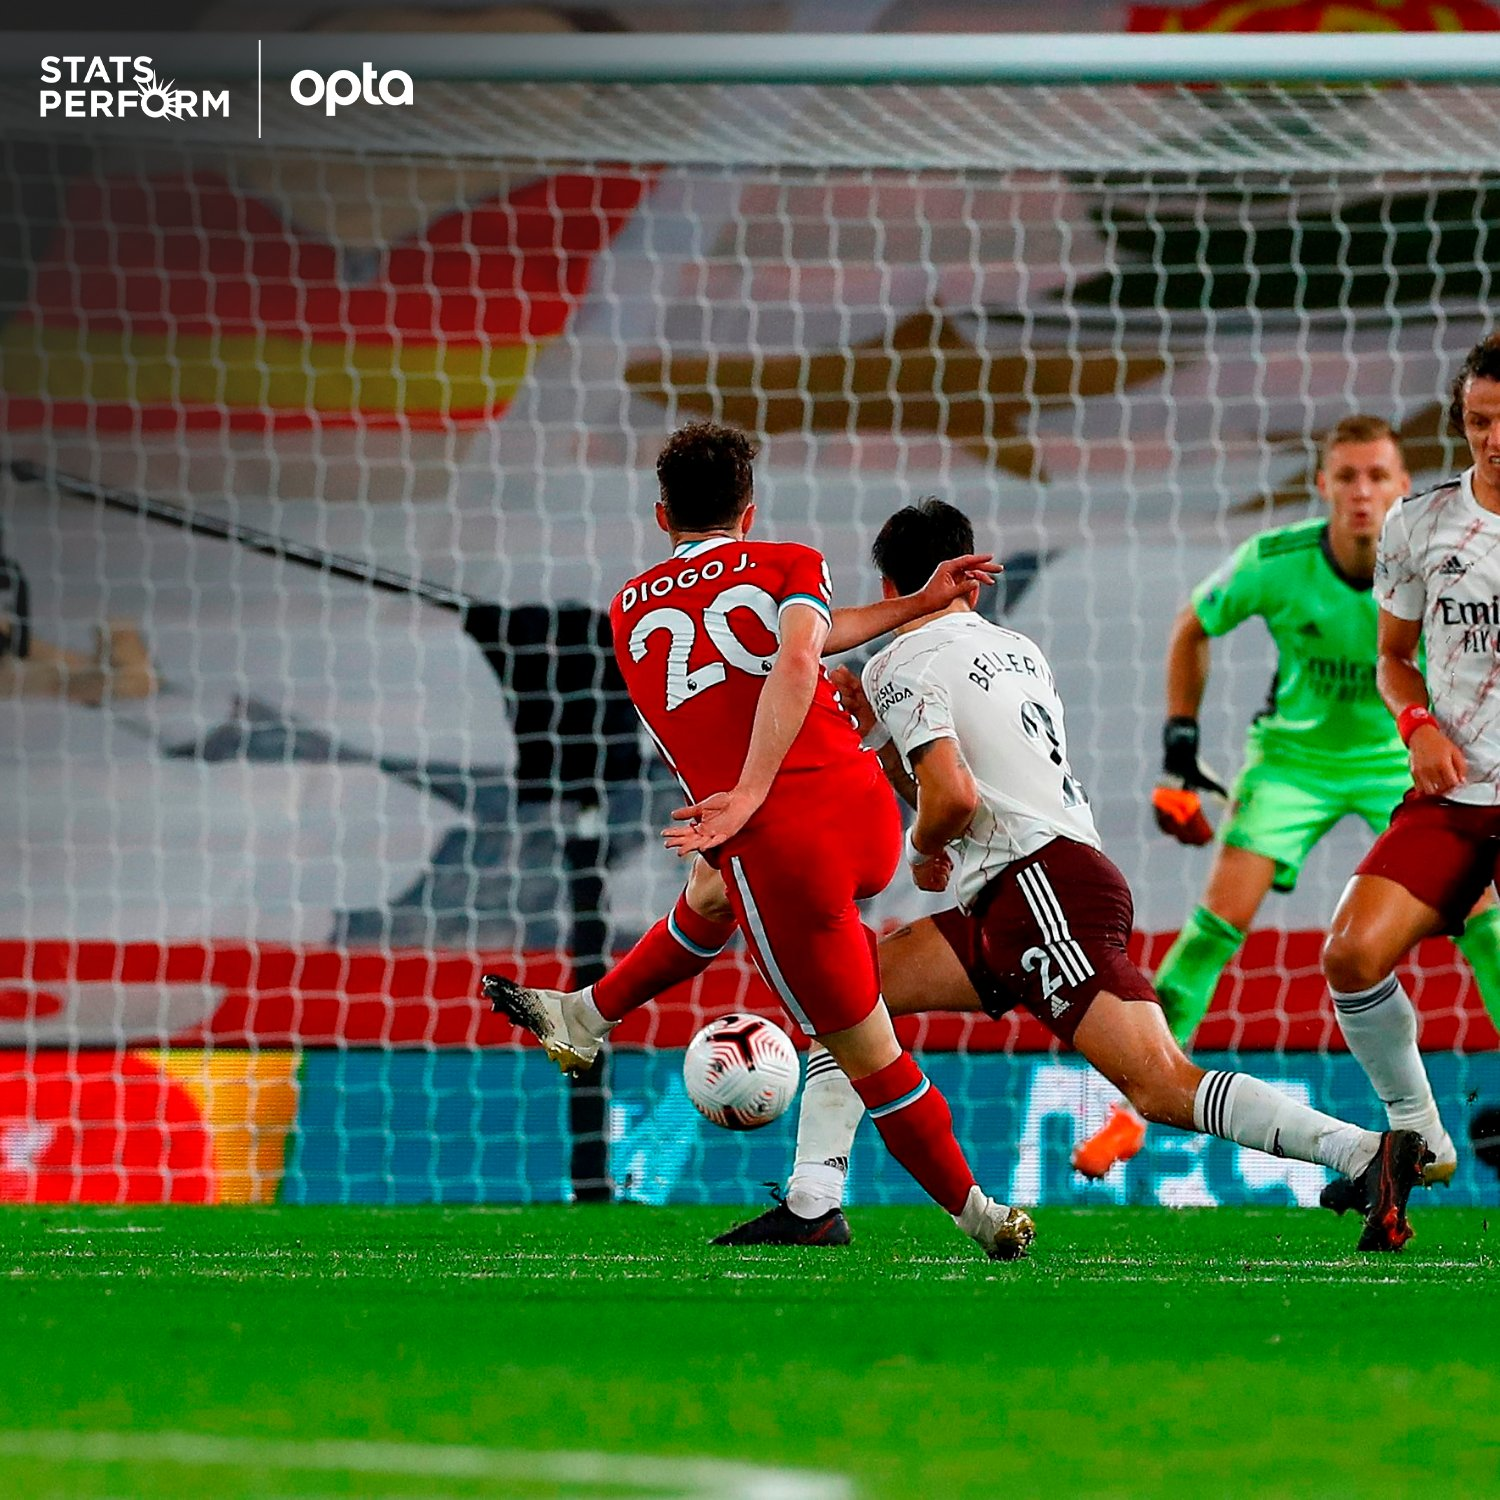 optajoe on twitter 13 diogo jota is the 13th player to score on his premier league debut for liverpool and second to do so in a match against arsenal after sadio diogo jota is the 13th player to score